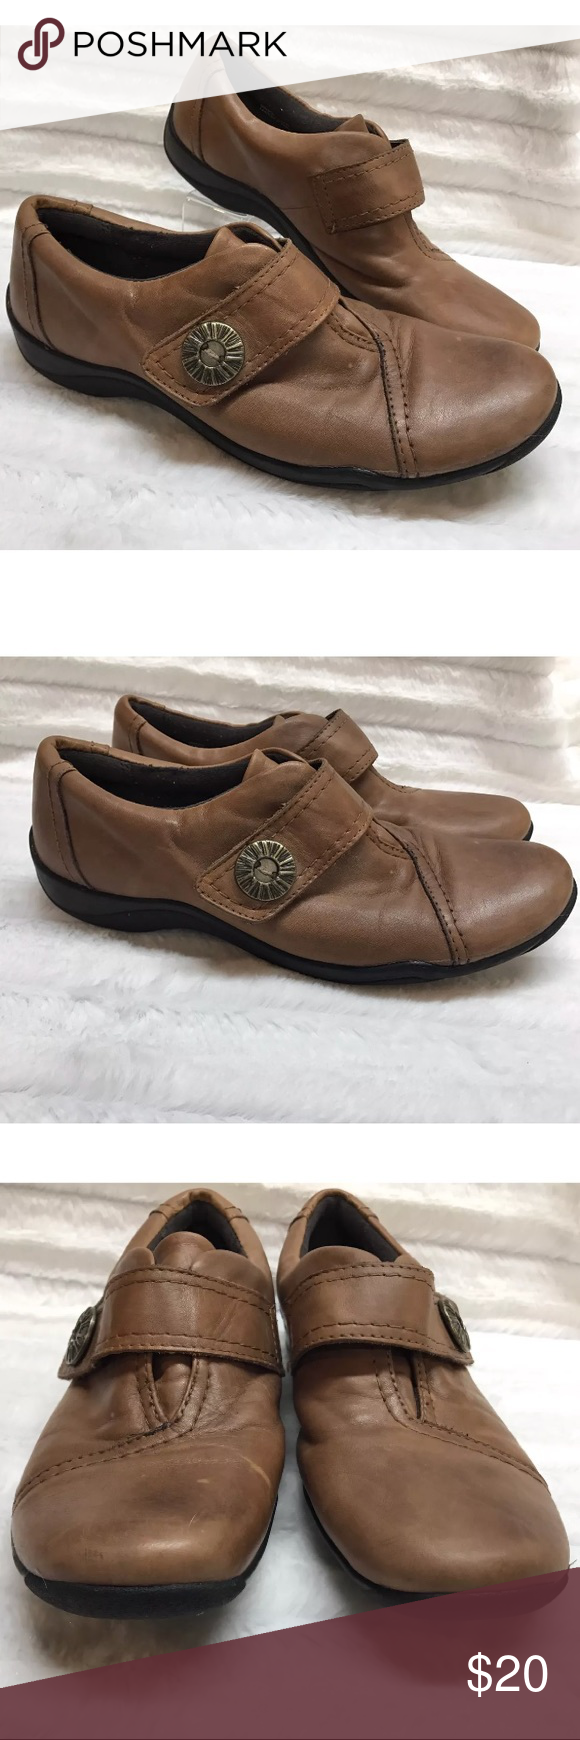 Clarks Artisan Leather Brown Loafer Slip On Shoes Women's Clarks Artisan  Leather Shoes Size 7.5 Light Brown Loafer Slip On Gently used condition, ...